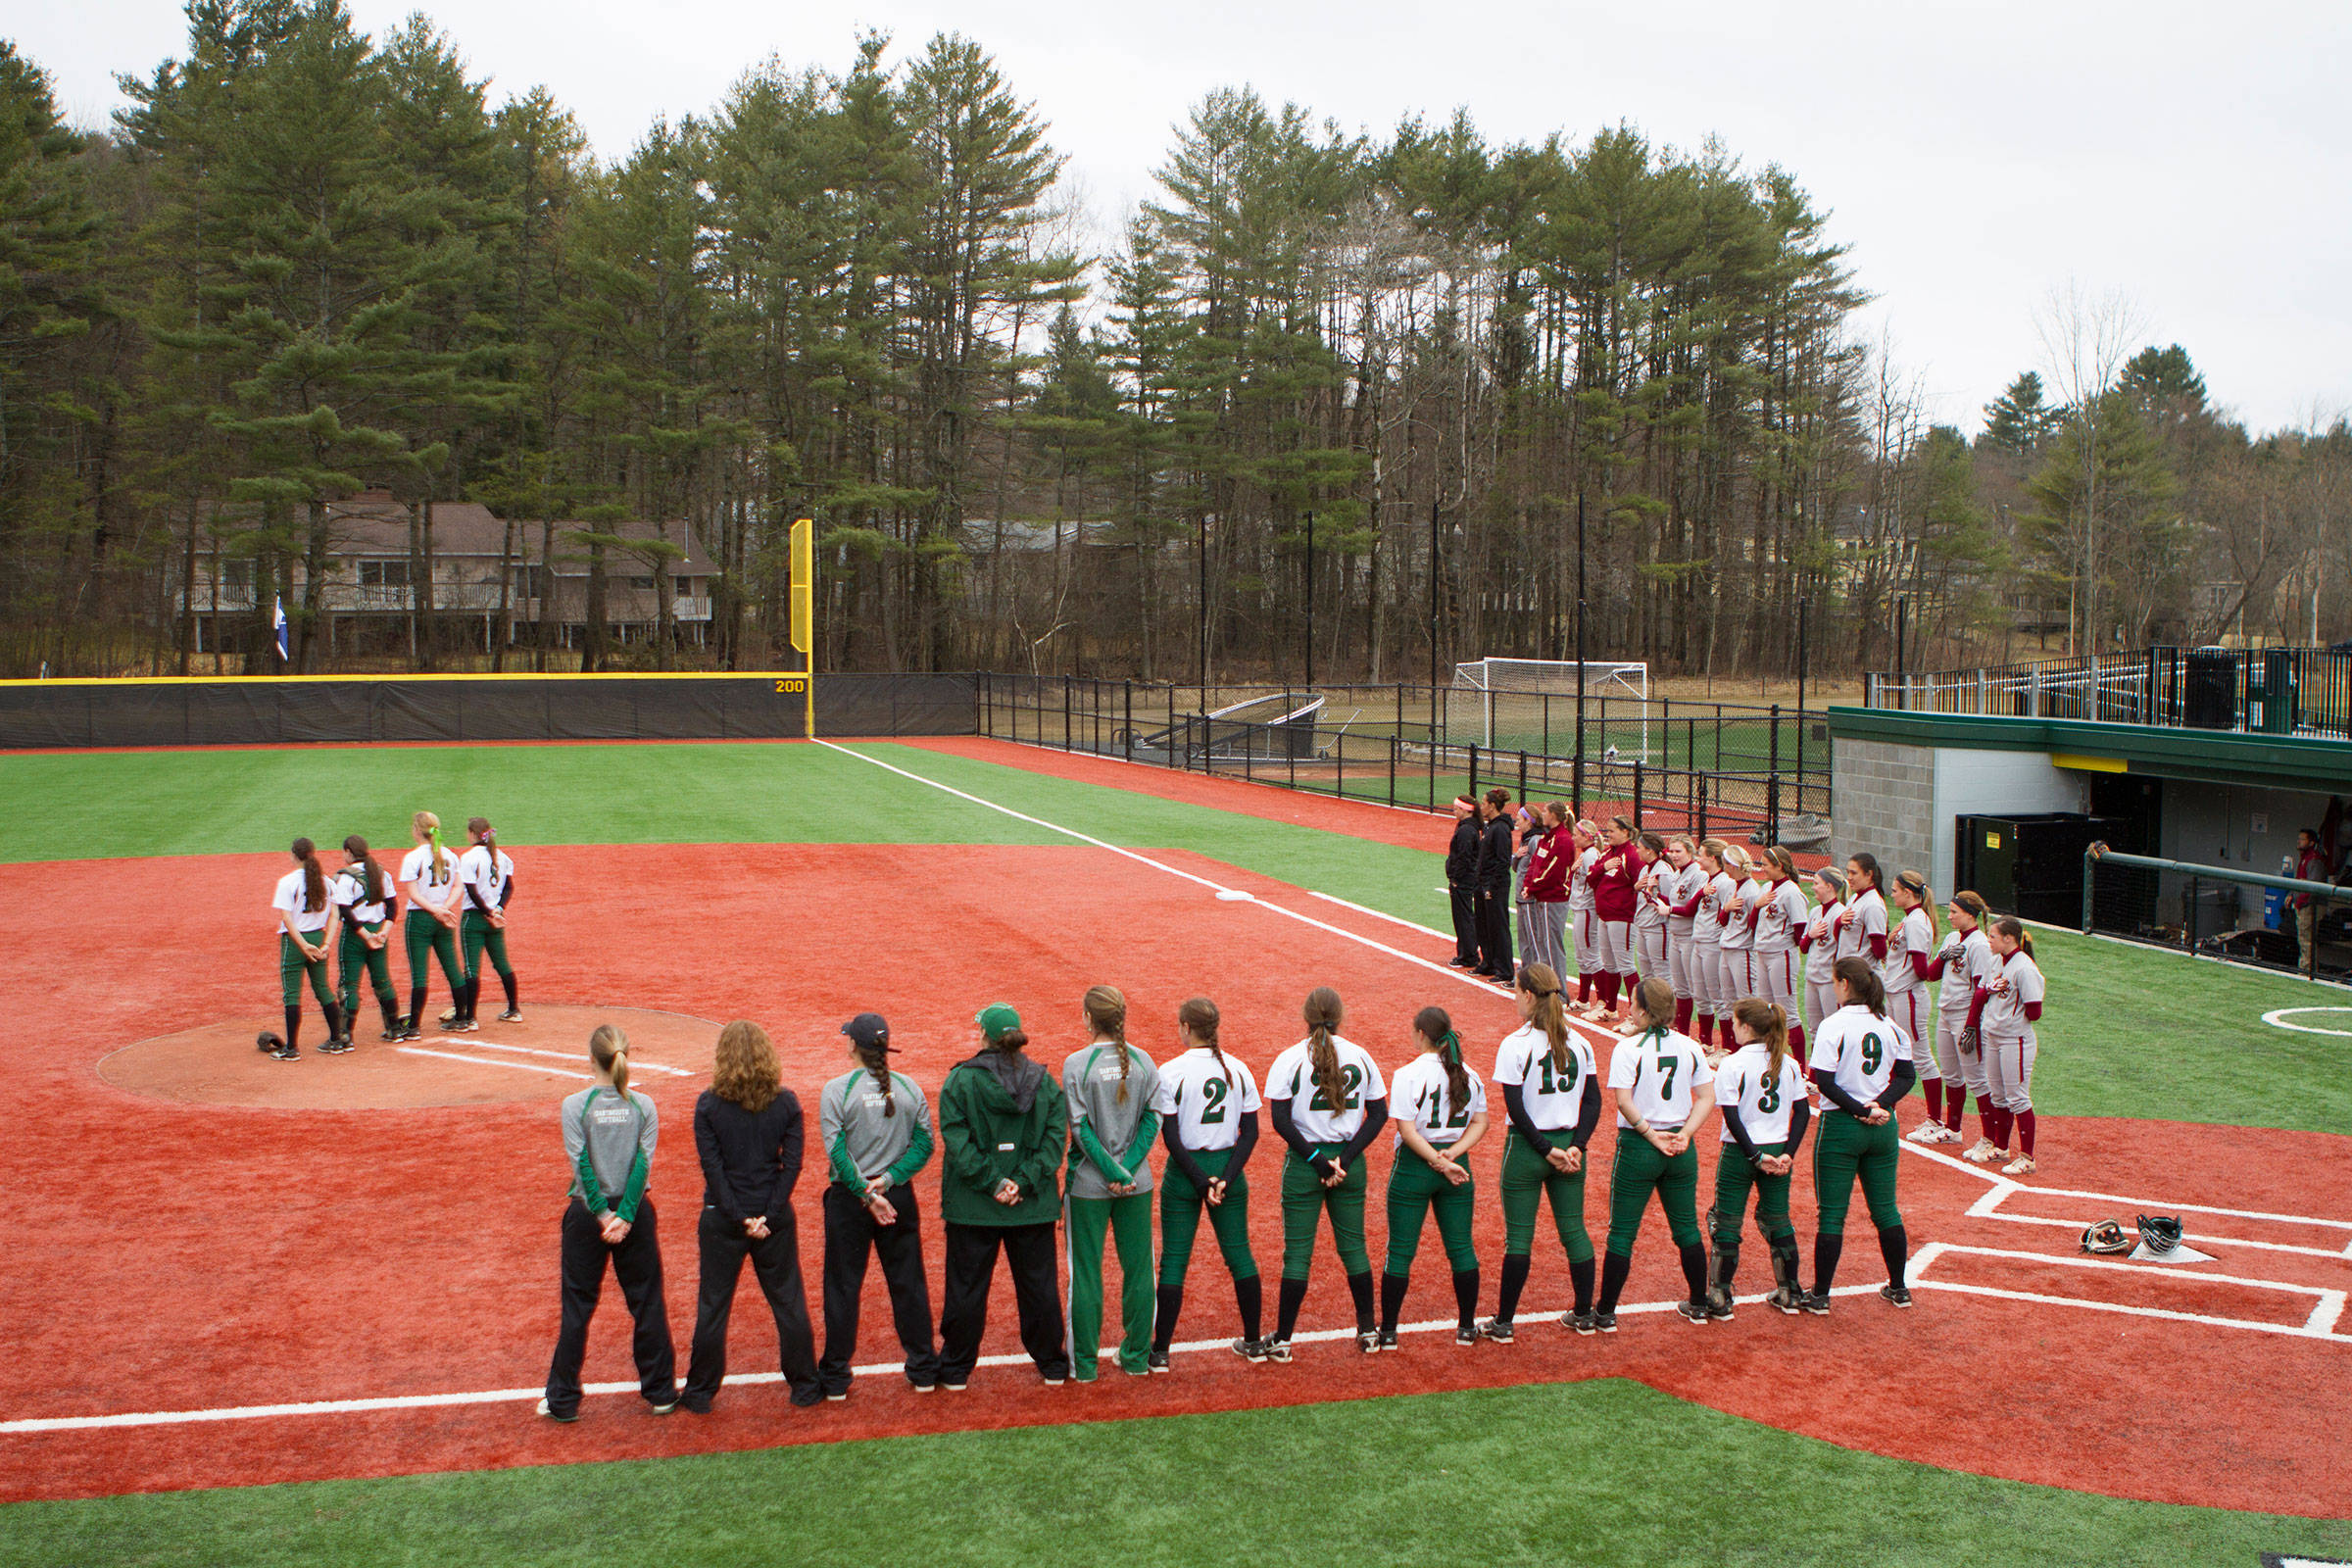 Softball Looks to Wrap Up North Division Title against